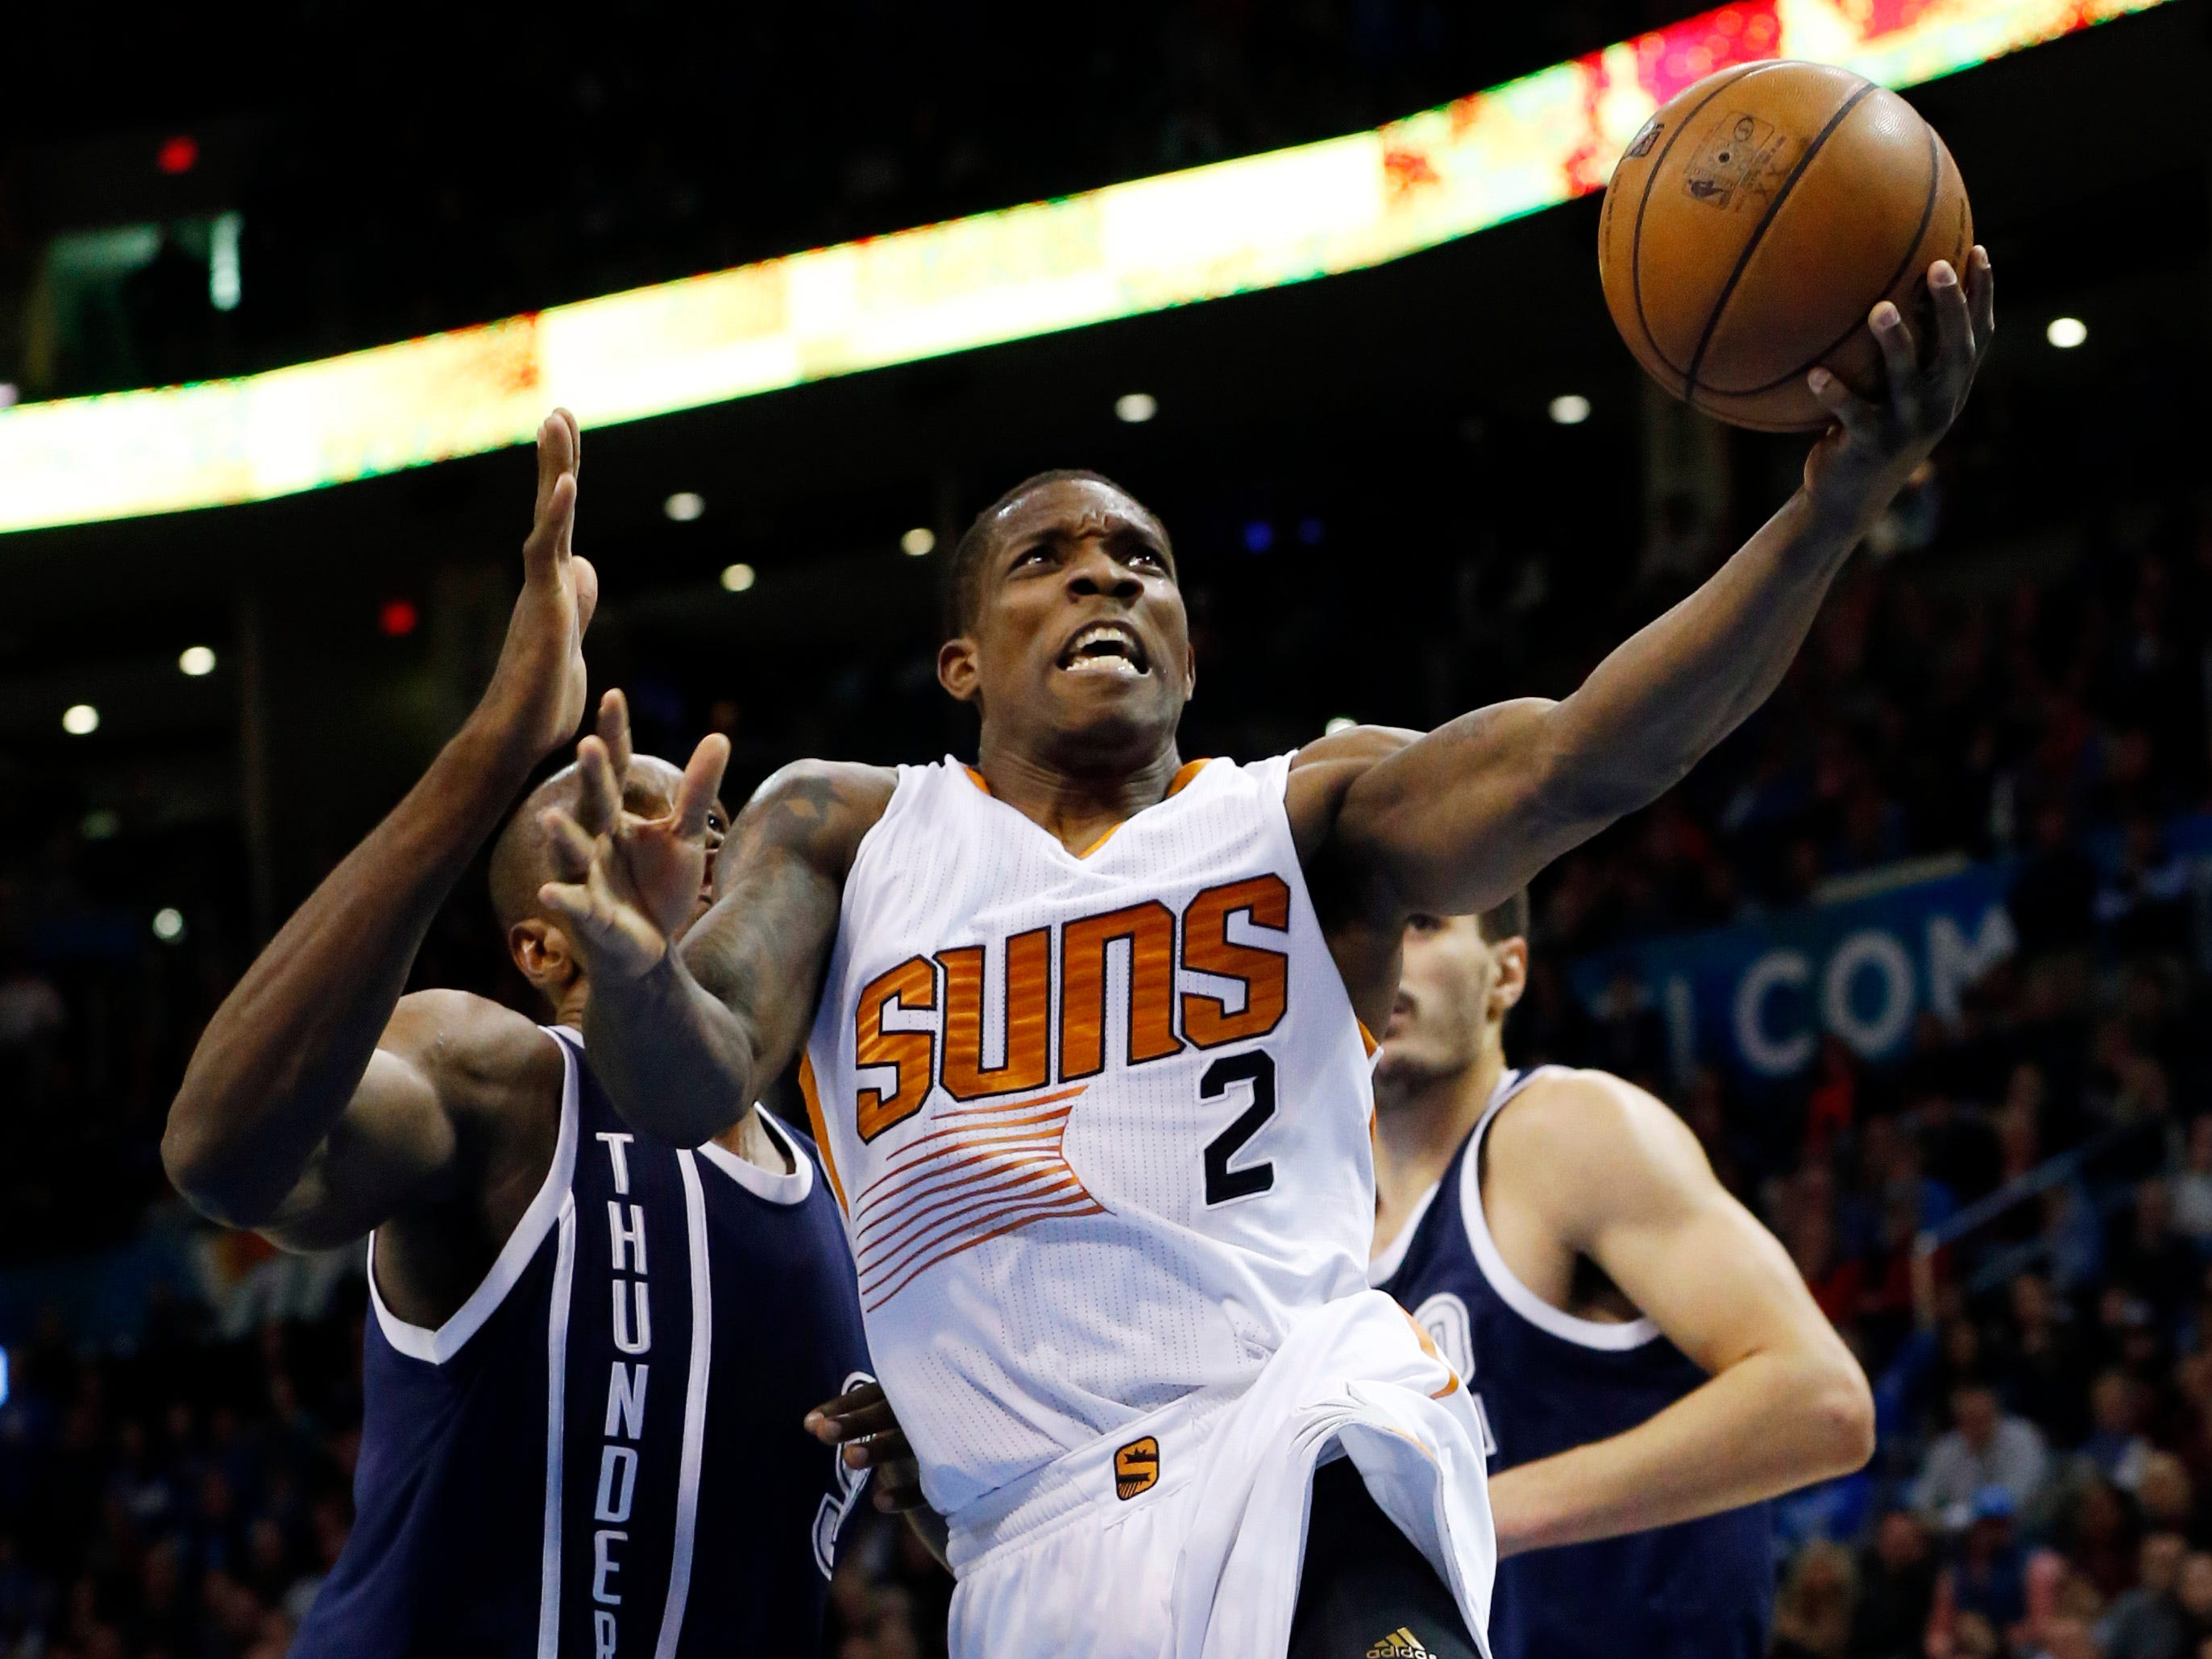 2014-15 | Suns MVP: Eric Bledsoe. Bledsoe averaged 17 and stayed healthy. He's likely to be remembered as the best player of a forgettable era.